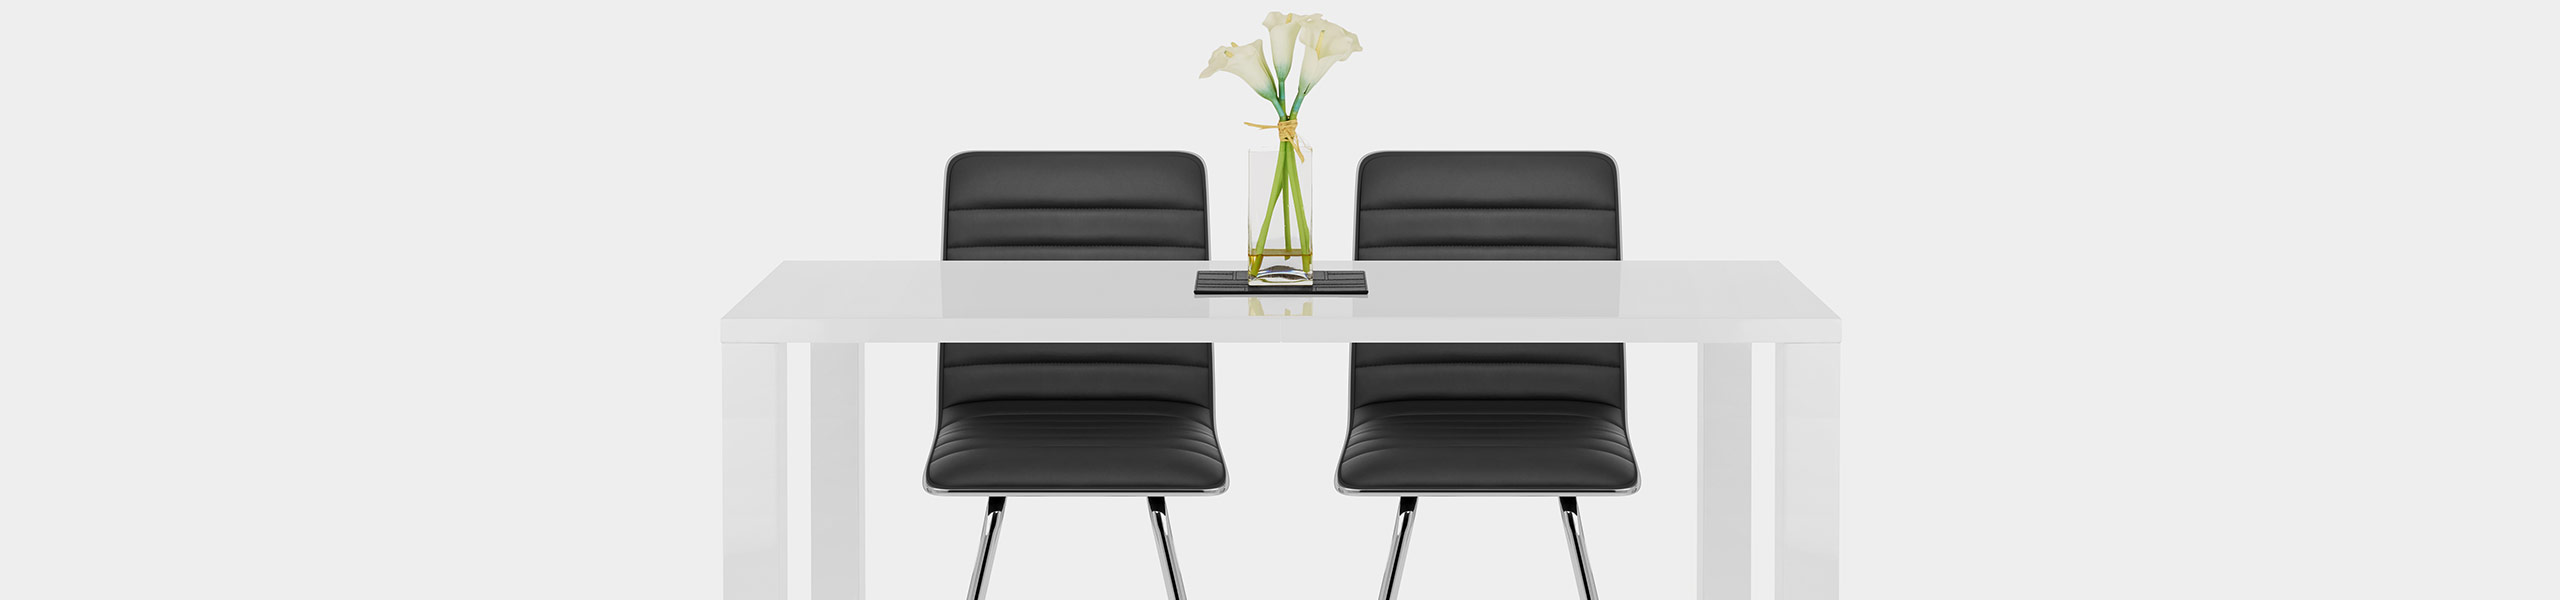 Vesta Dining Chair Black Video Banner